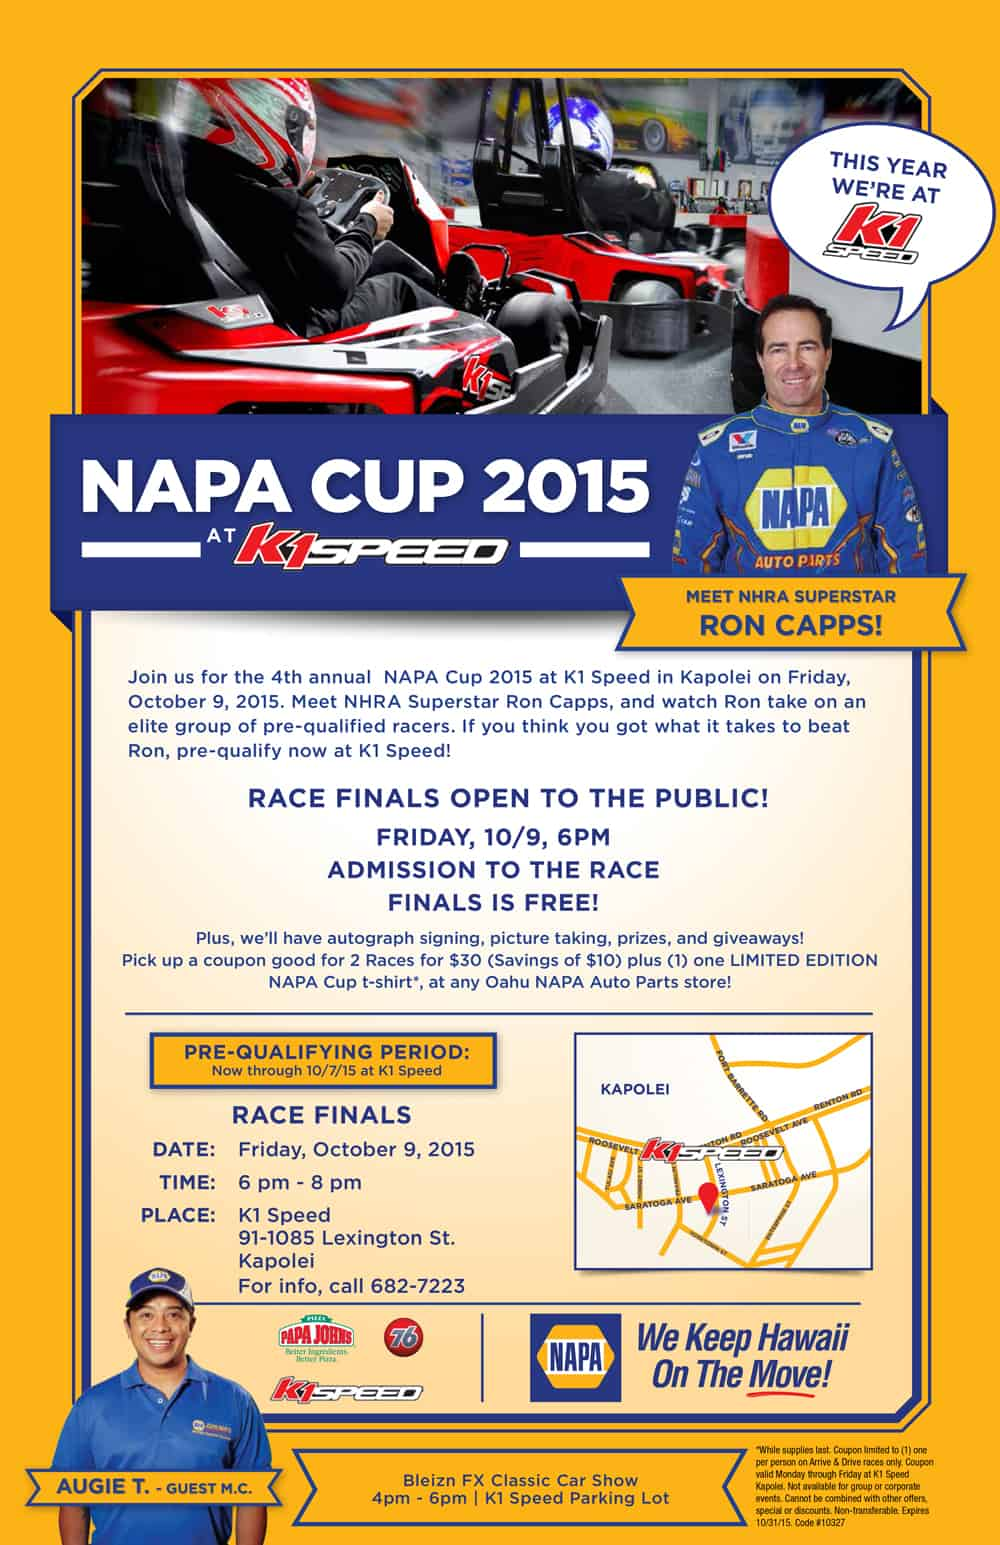 NAPA15-310_AUG-NAPA-Cup-Poster-Update-2015-proof02